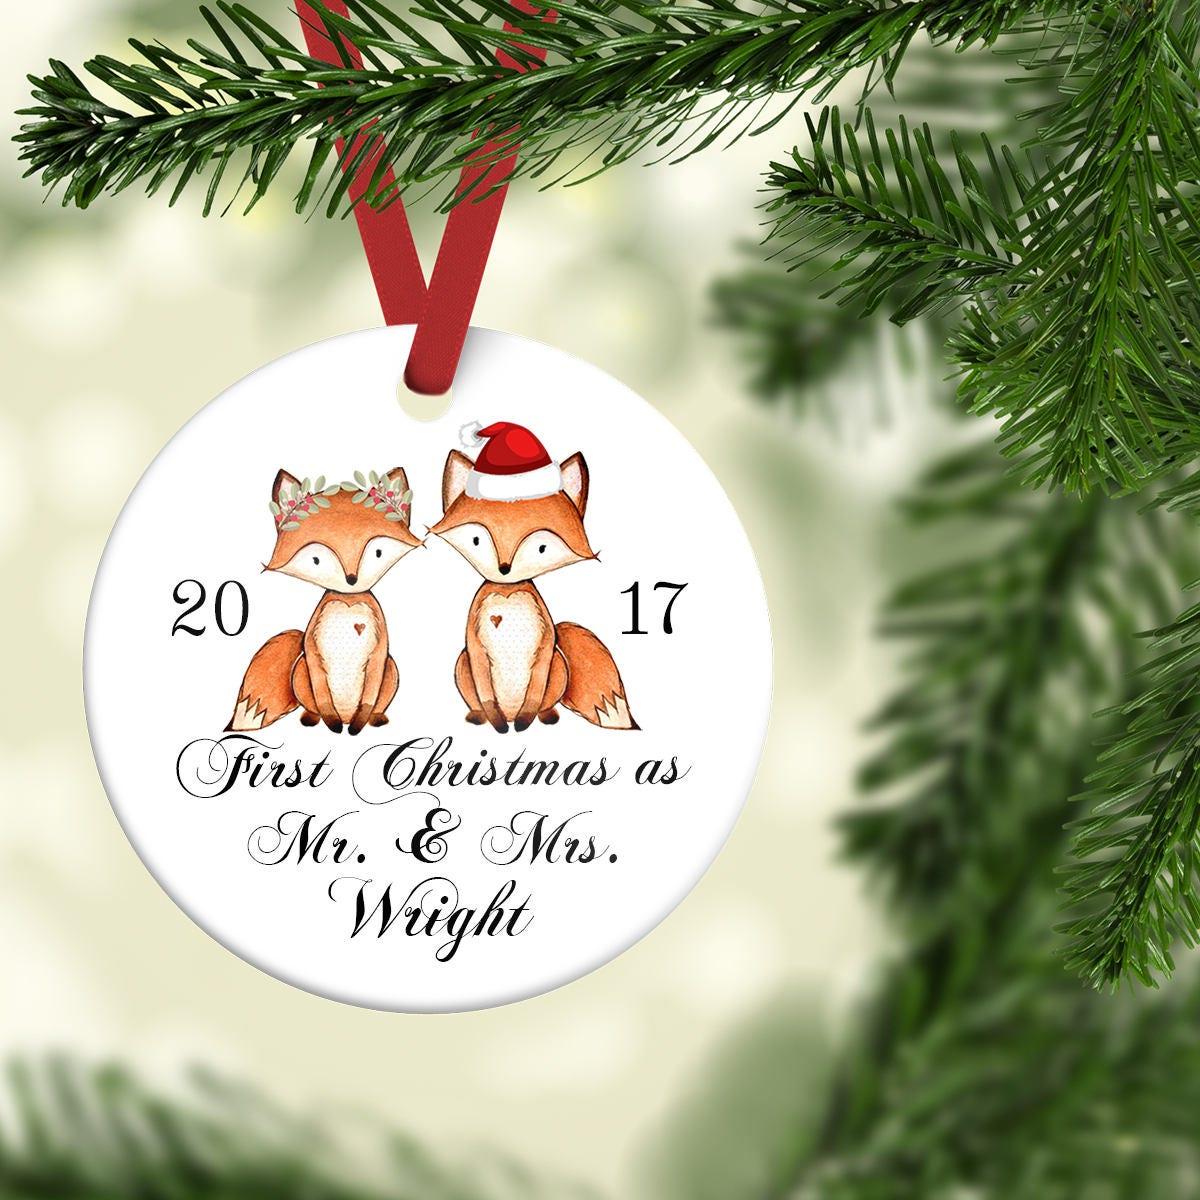 First Christmas as Mr and MrsNewlywed Ornament Personalized